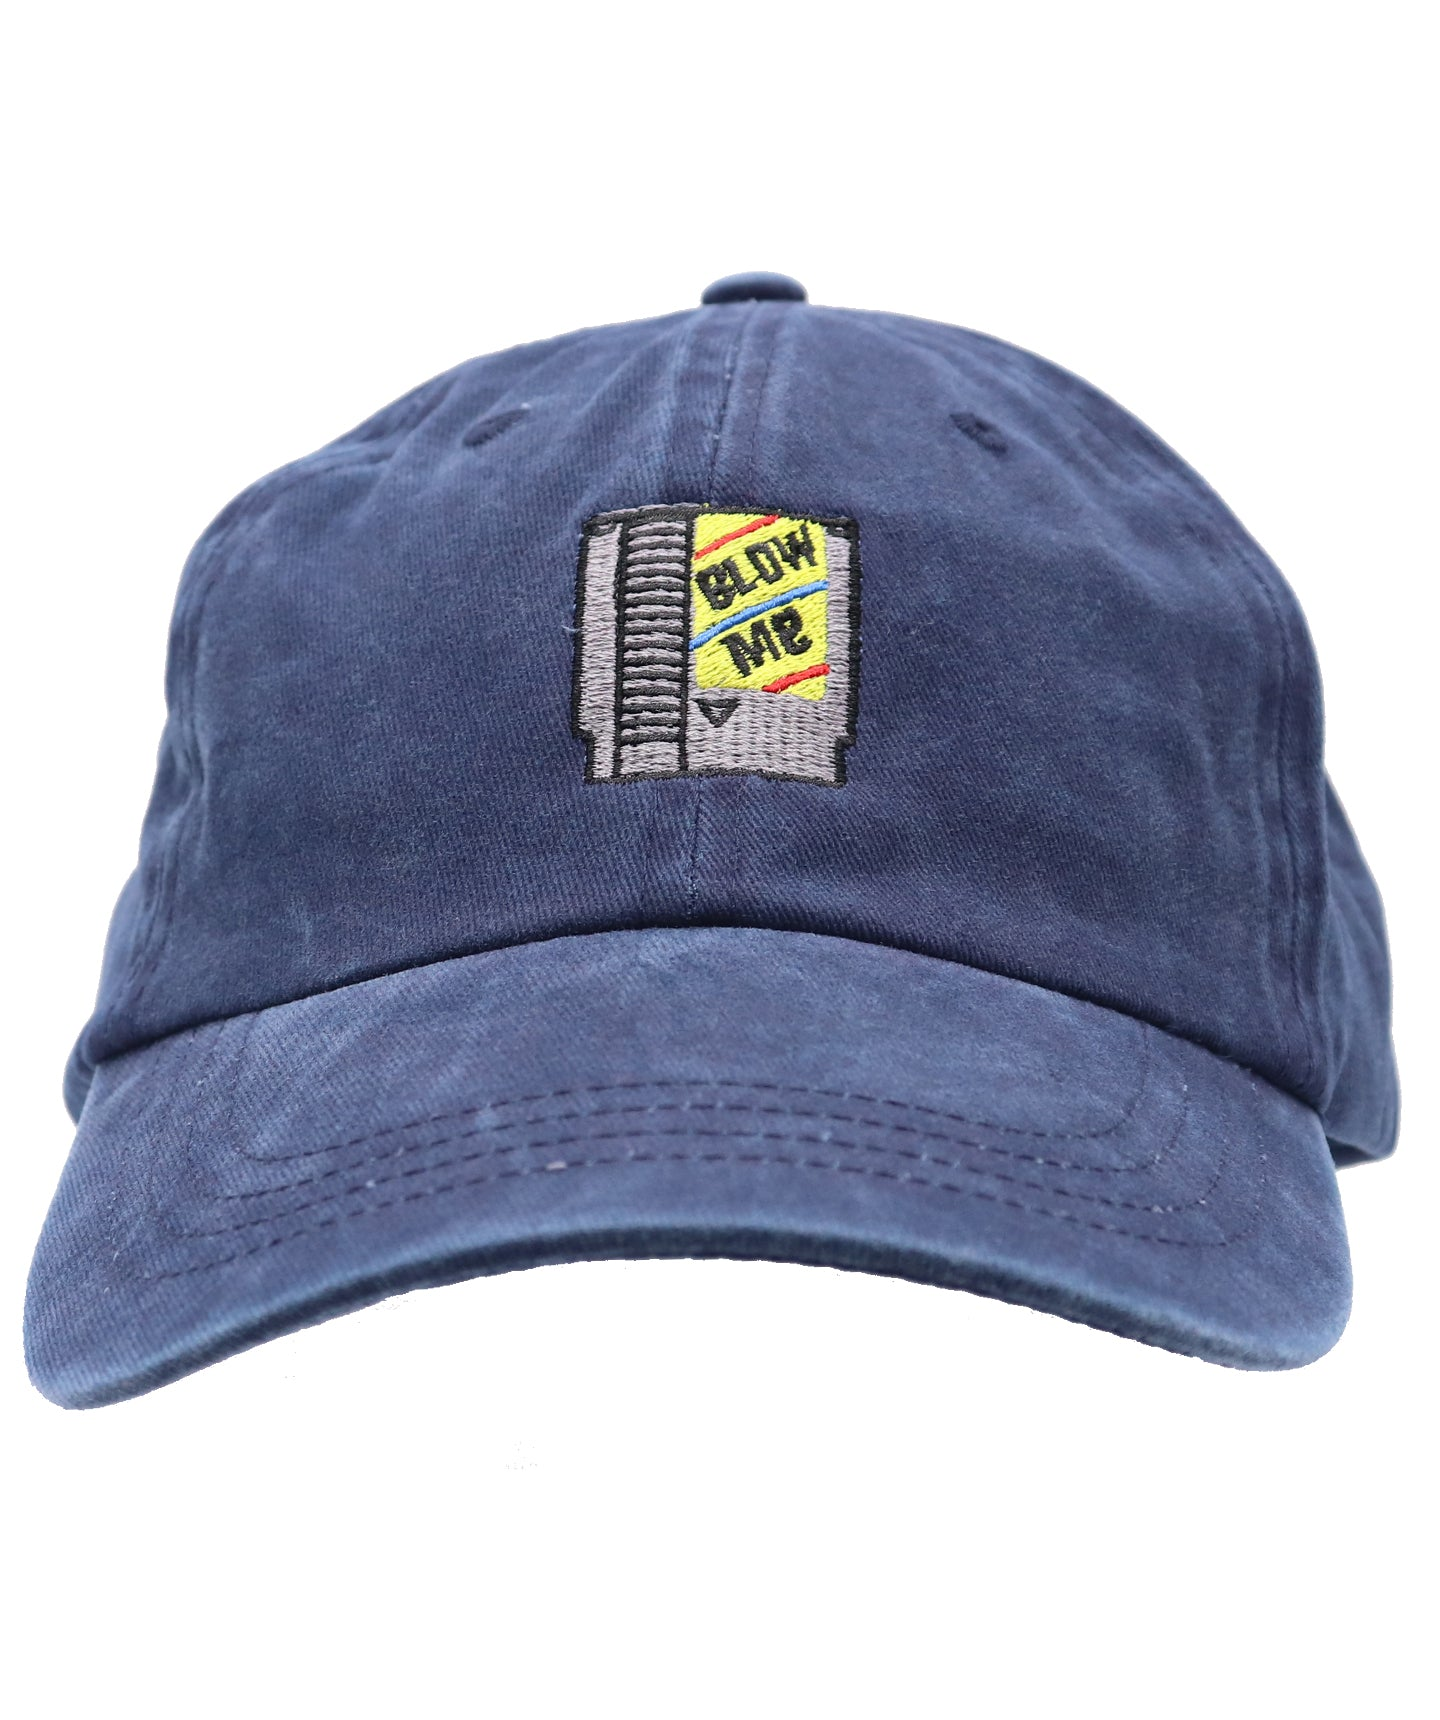 Unisex Blow Me navy blue baseball hat of classic NES Cartridge 8-Bit cartridge embroidery. Old school gamers will enjoy this fun cheeky reference. Funny gifts for family and game players.